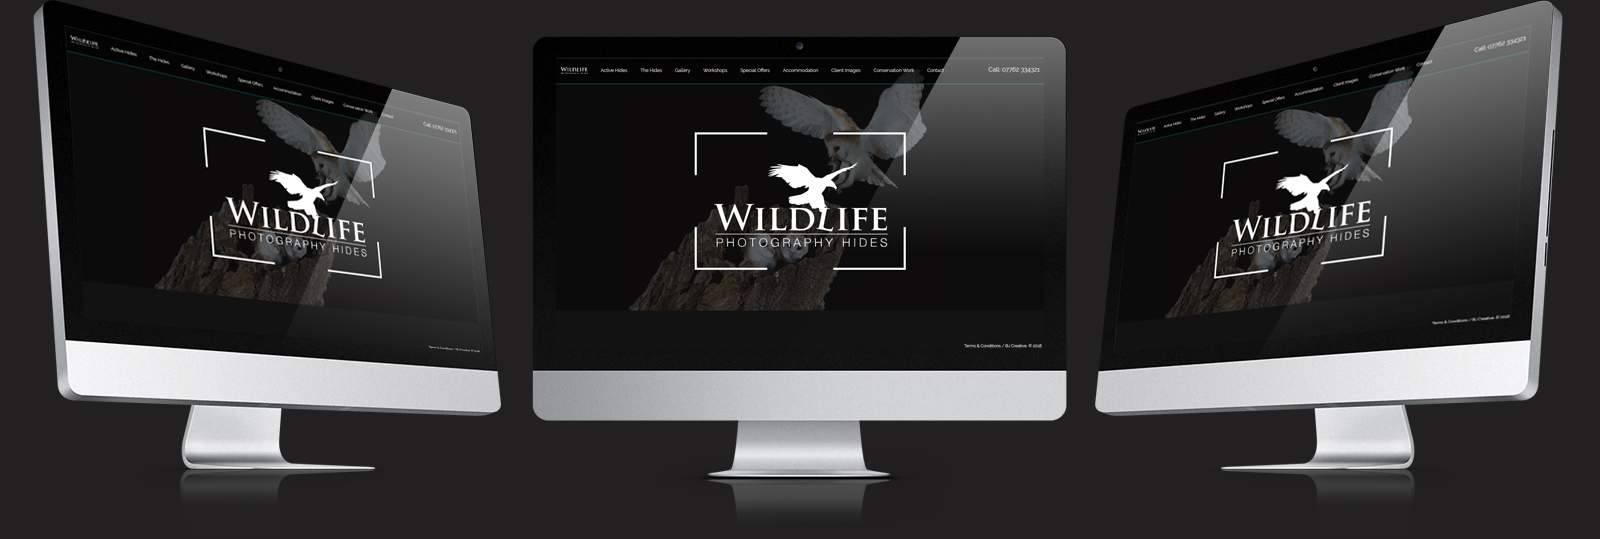 Stamford Web Design - Wildlie Photo Hides